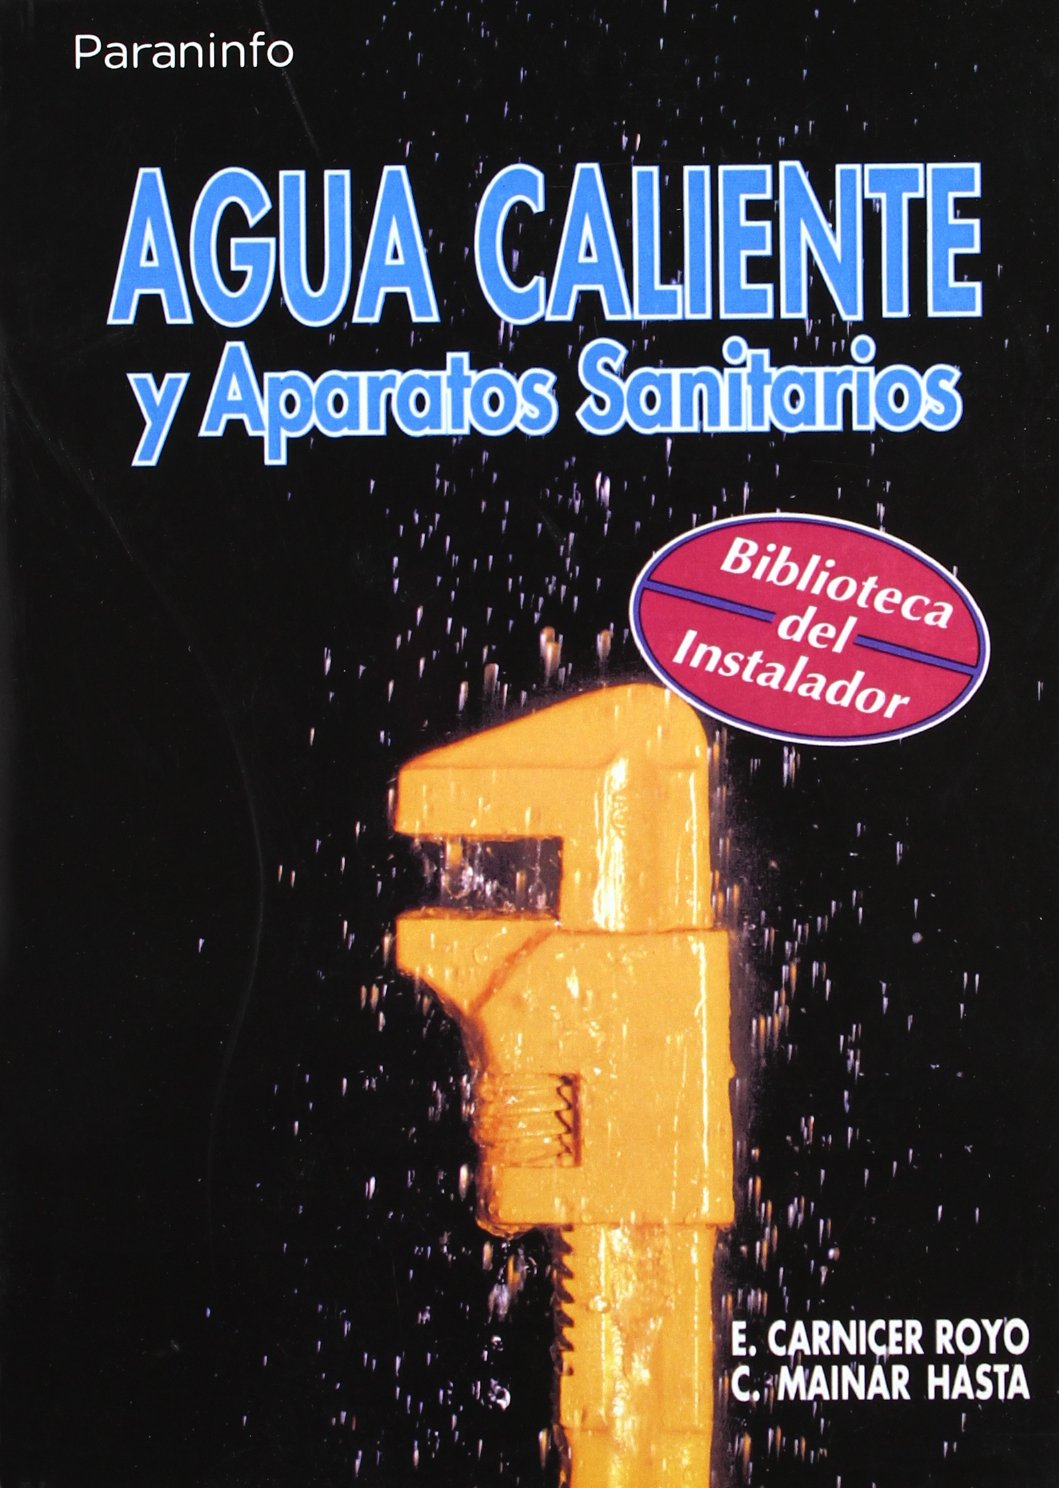 Agua Caliente y Aparatos Sanitarios (Spanish Edition): Enrique Carnicer Royo, Concepcion Mainar Hasta: 9788428321693: Amazon.com: Books